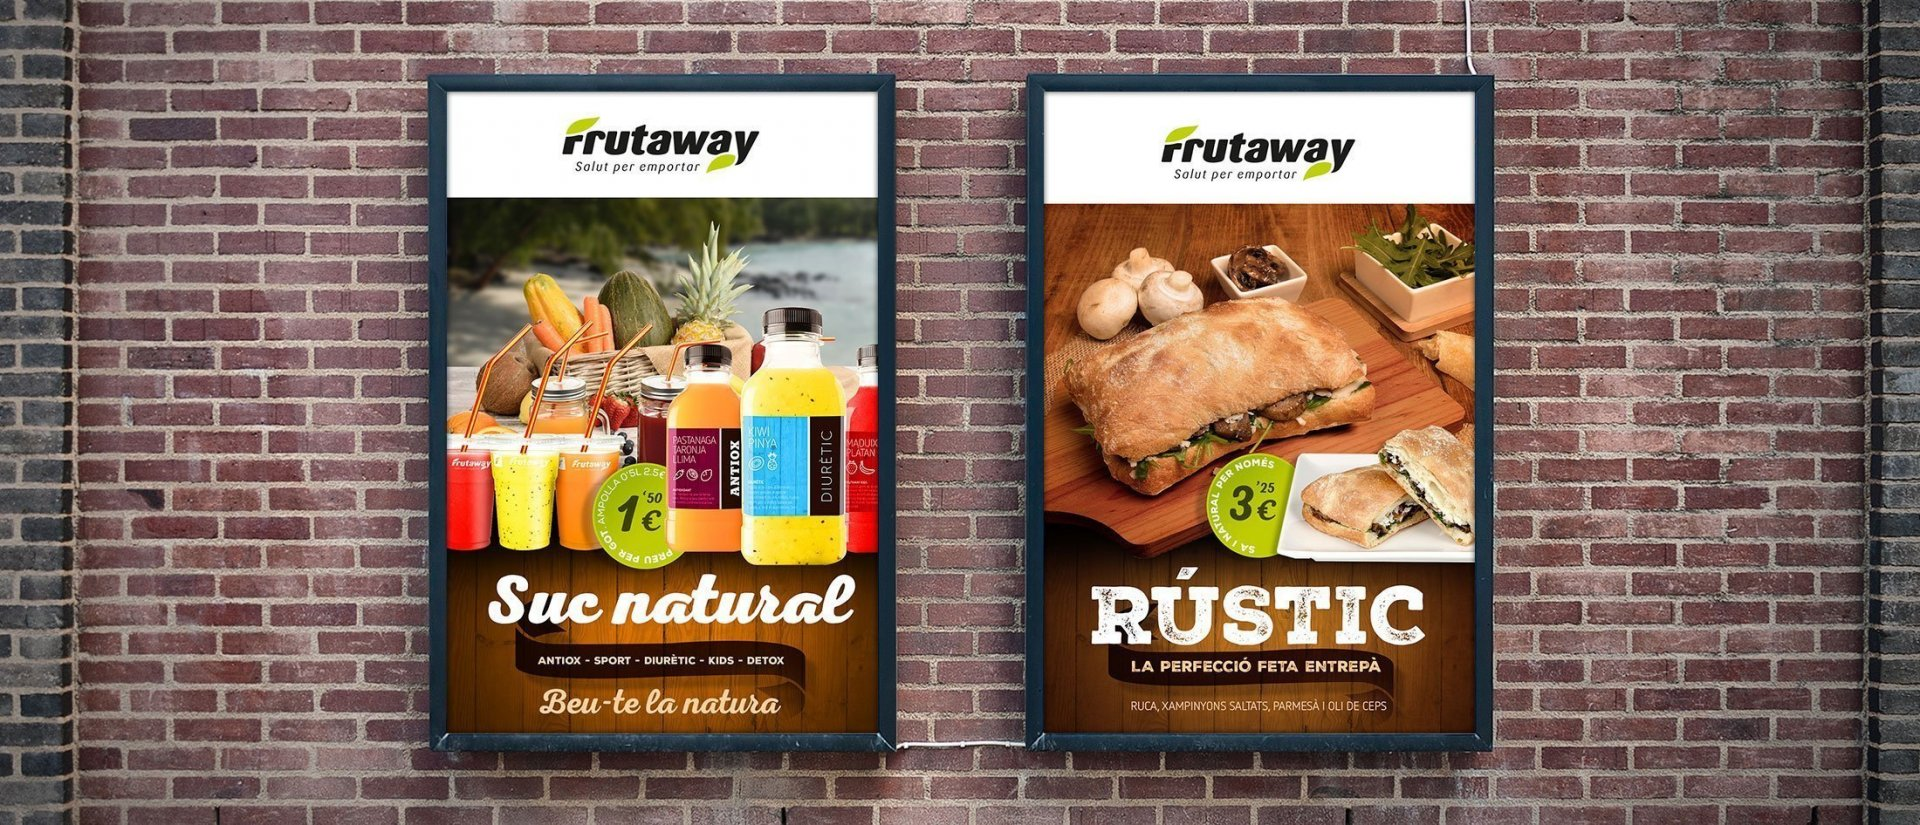 Franchise brand design for Frutaway